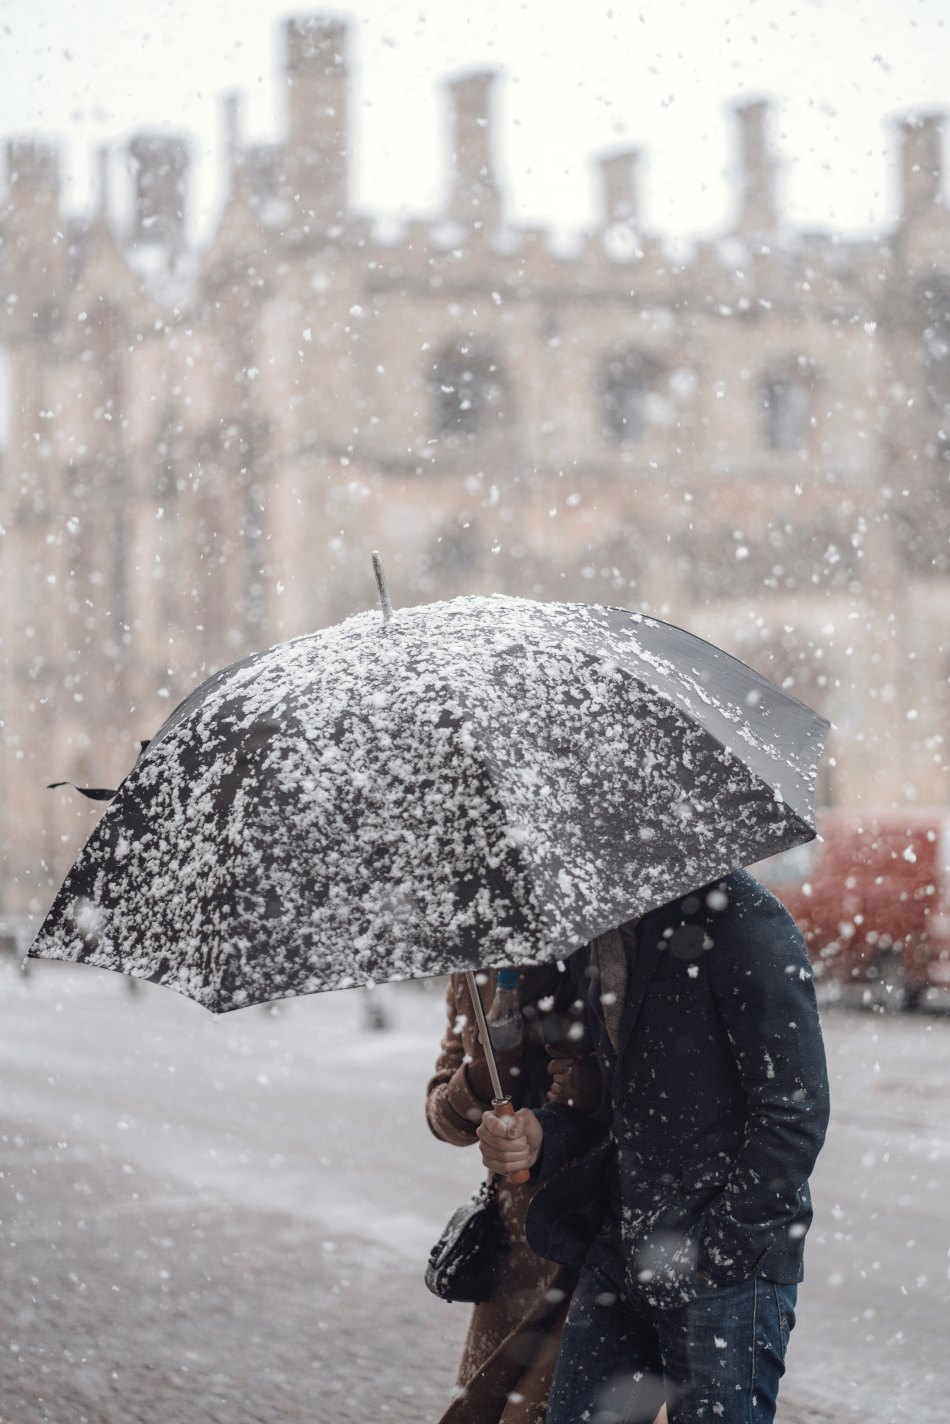 London man and woman holding umbrella while it's snowing